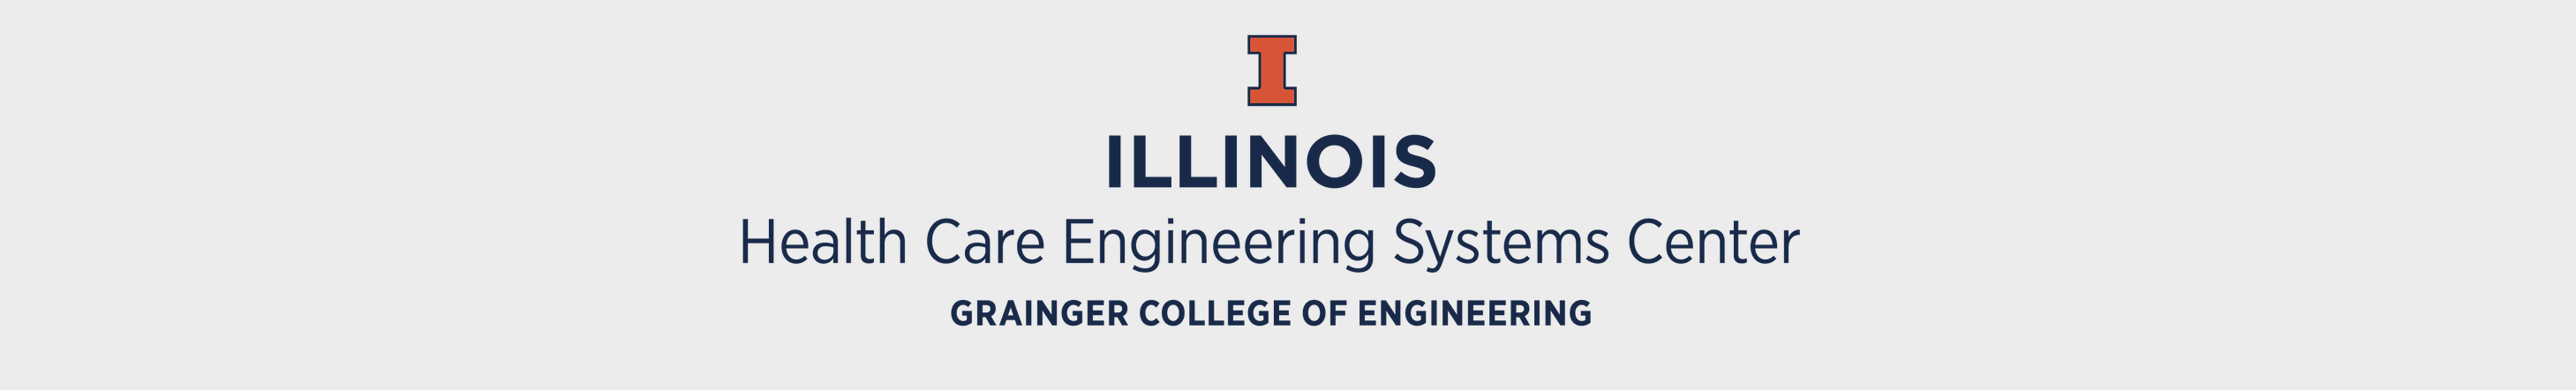 Health Care Engineering Systems Center Grainger College of Engineering